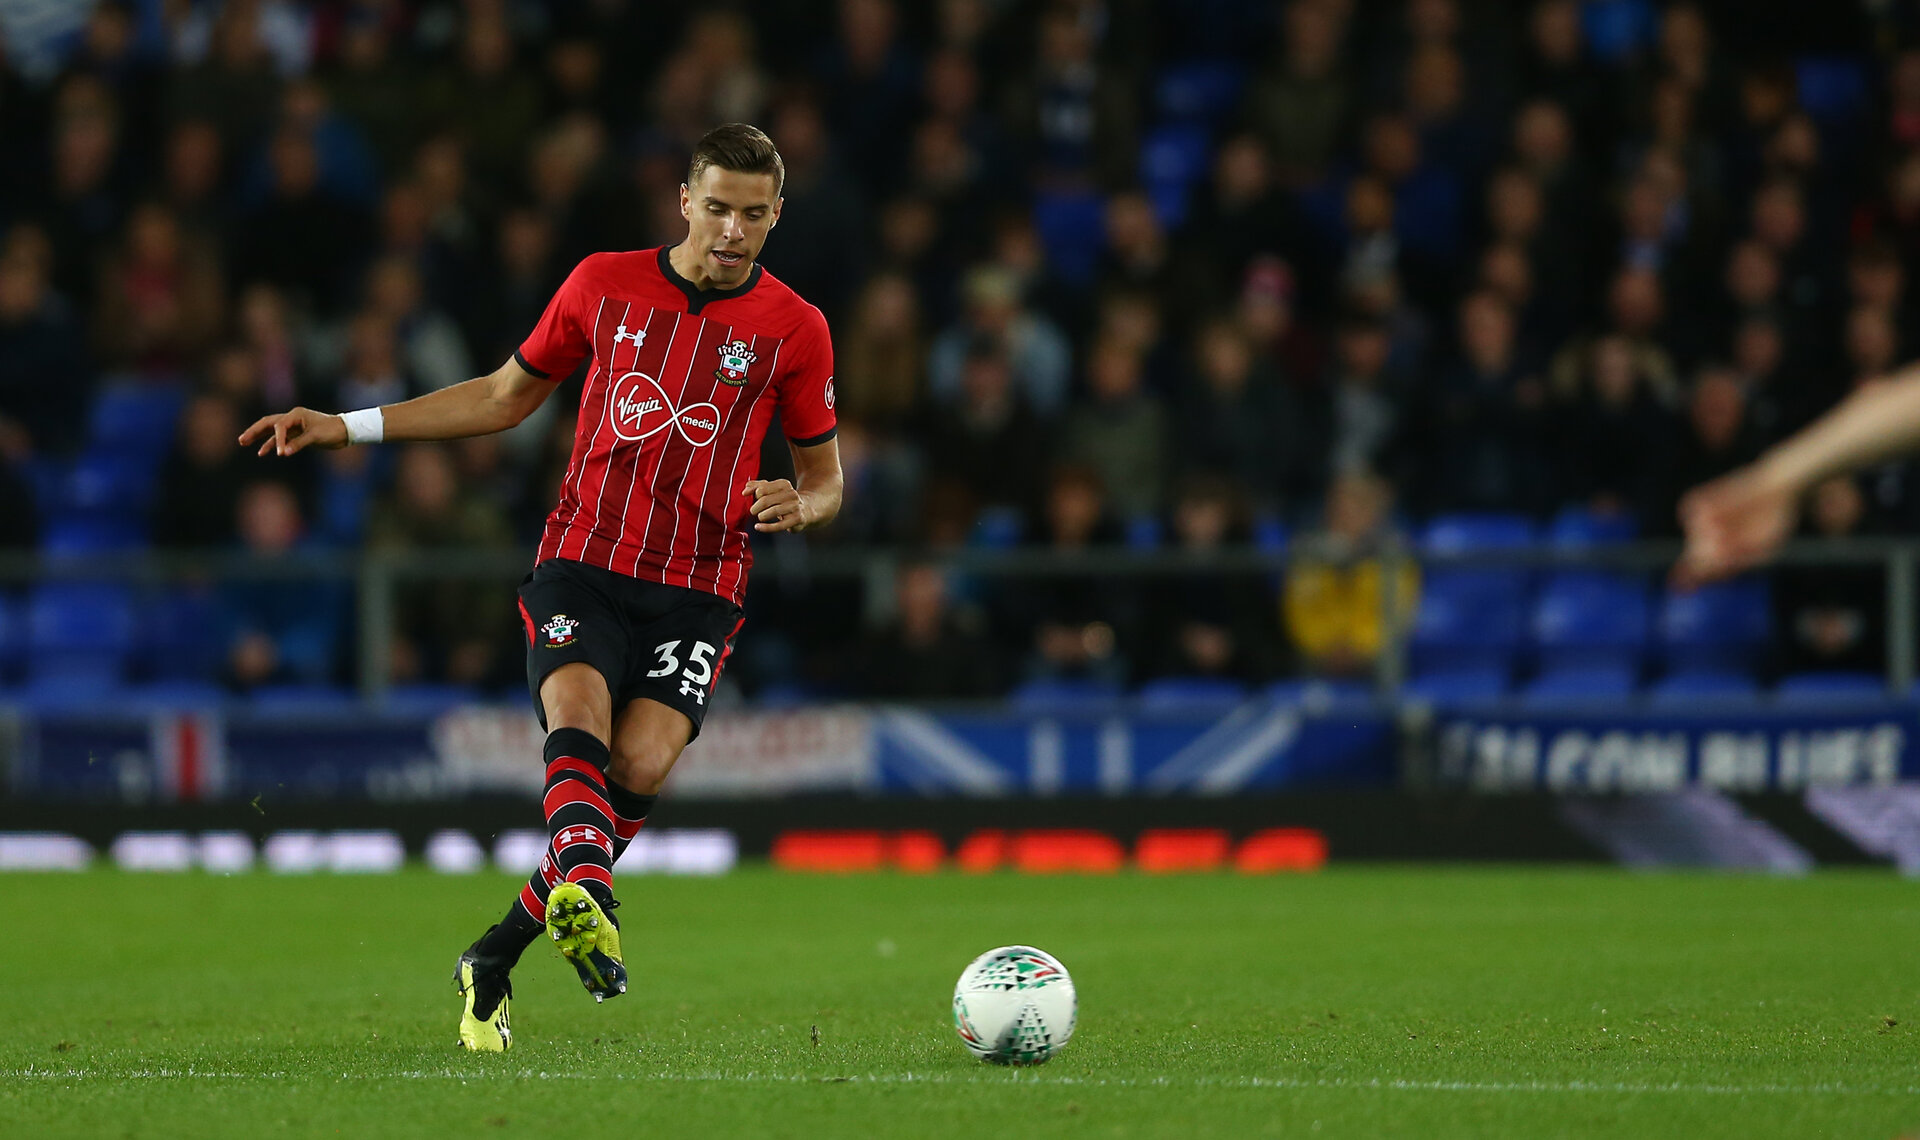 LIVERPOOL, ENGLAND - OCTOBER 02: Jan Bednarek of Southampton during the Carabao Cup Third Round match between Everton and Southampton at Goodison Park on October 2nd, 2018 in Liverpool, England. (Photo by Matt Watson/Southampton FC via Getty Images)